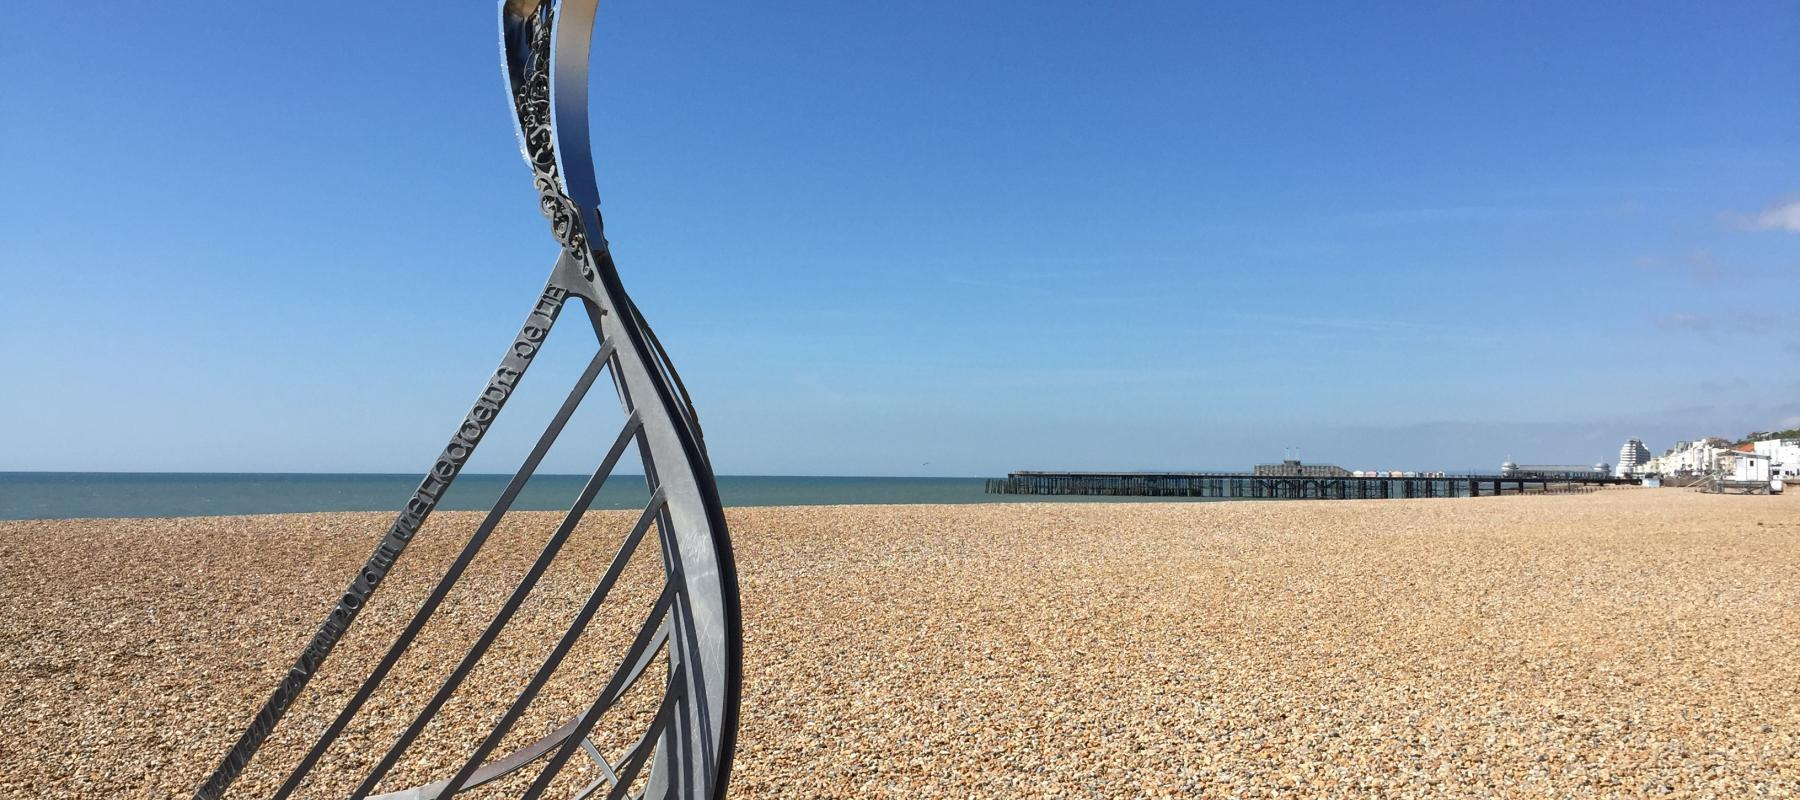 Hastings beach in the sunshine, along the Marshlink Line